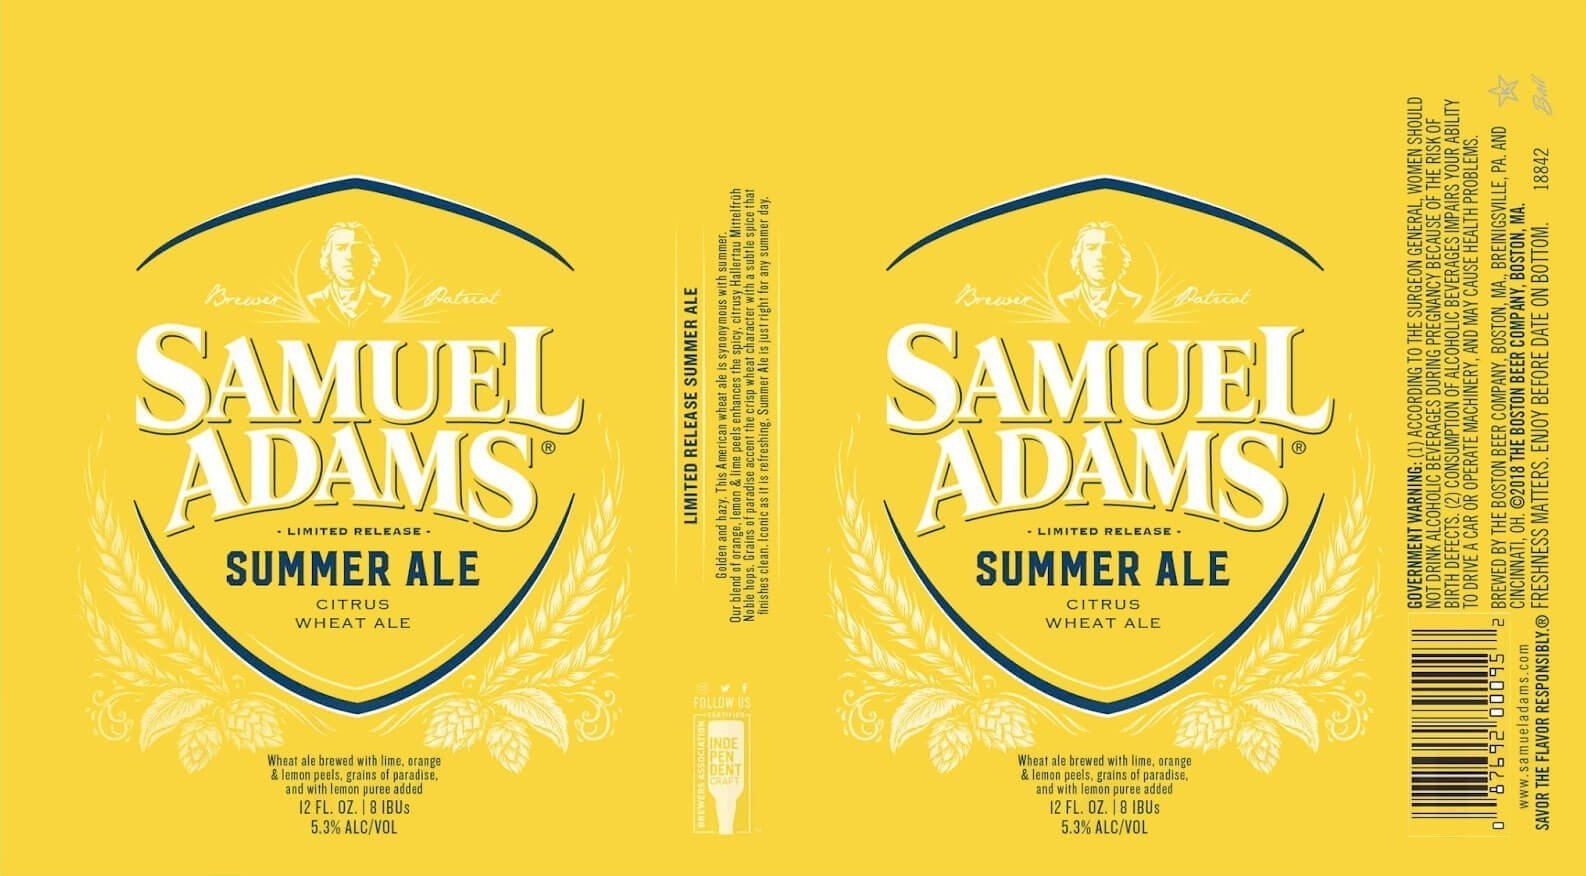 Label art for the Samuel Adams Summer Ale by Boston Beer Company